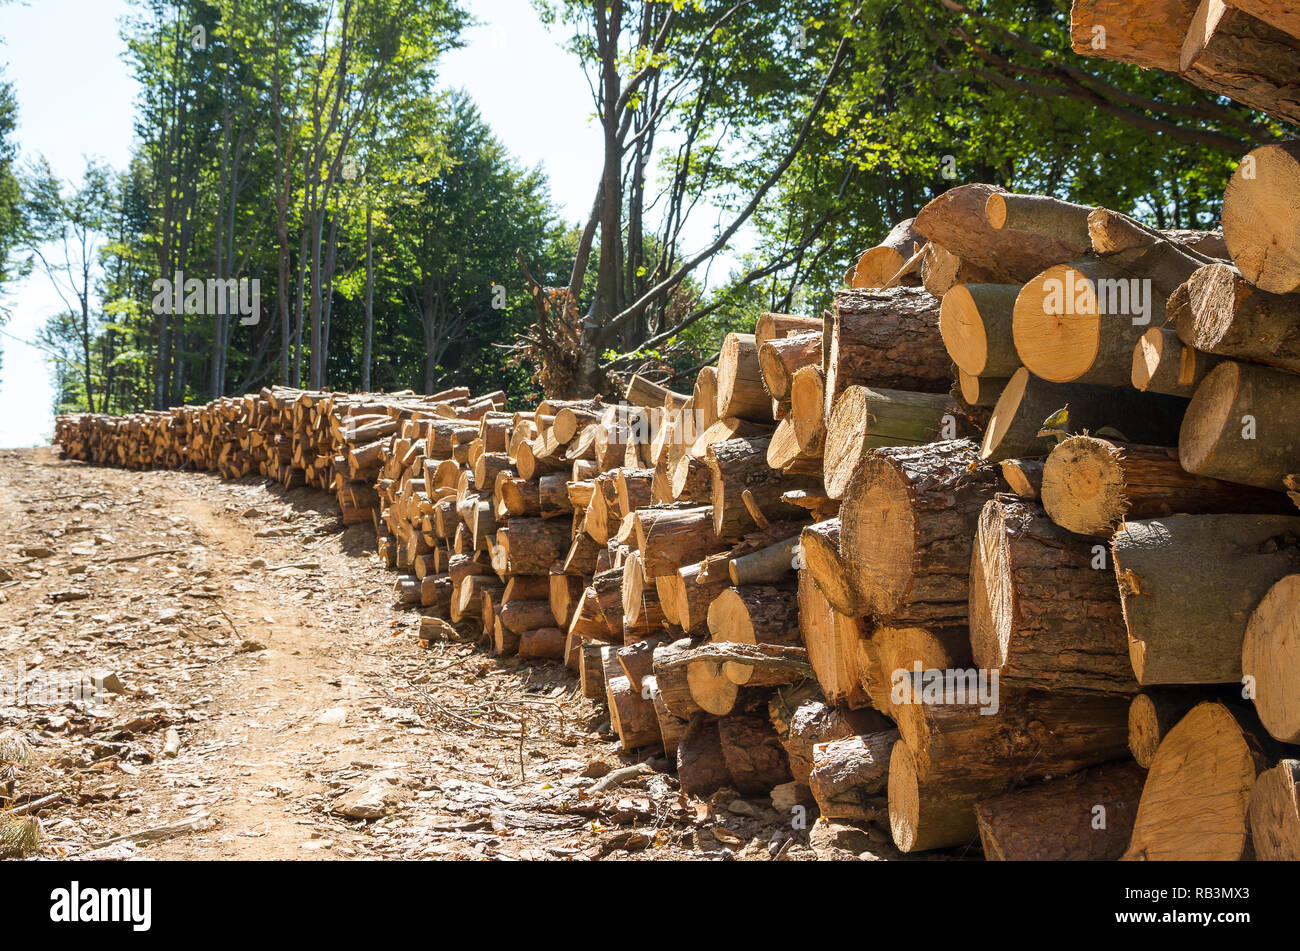 Forestry Industry. Log stacks along the forest road. - Stock Image